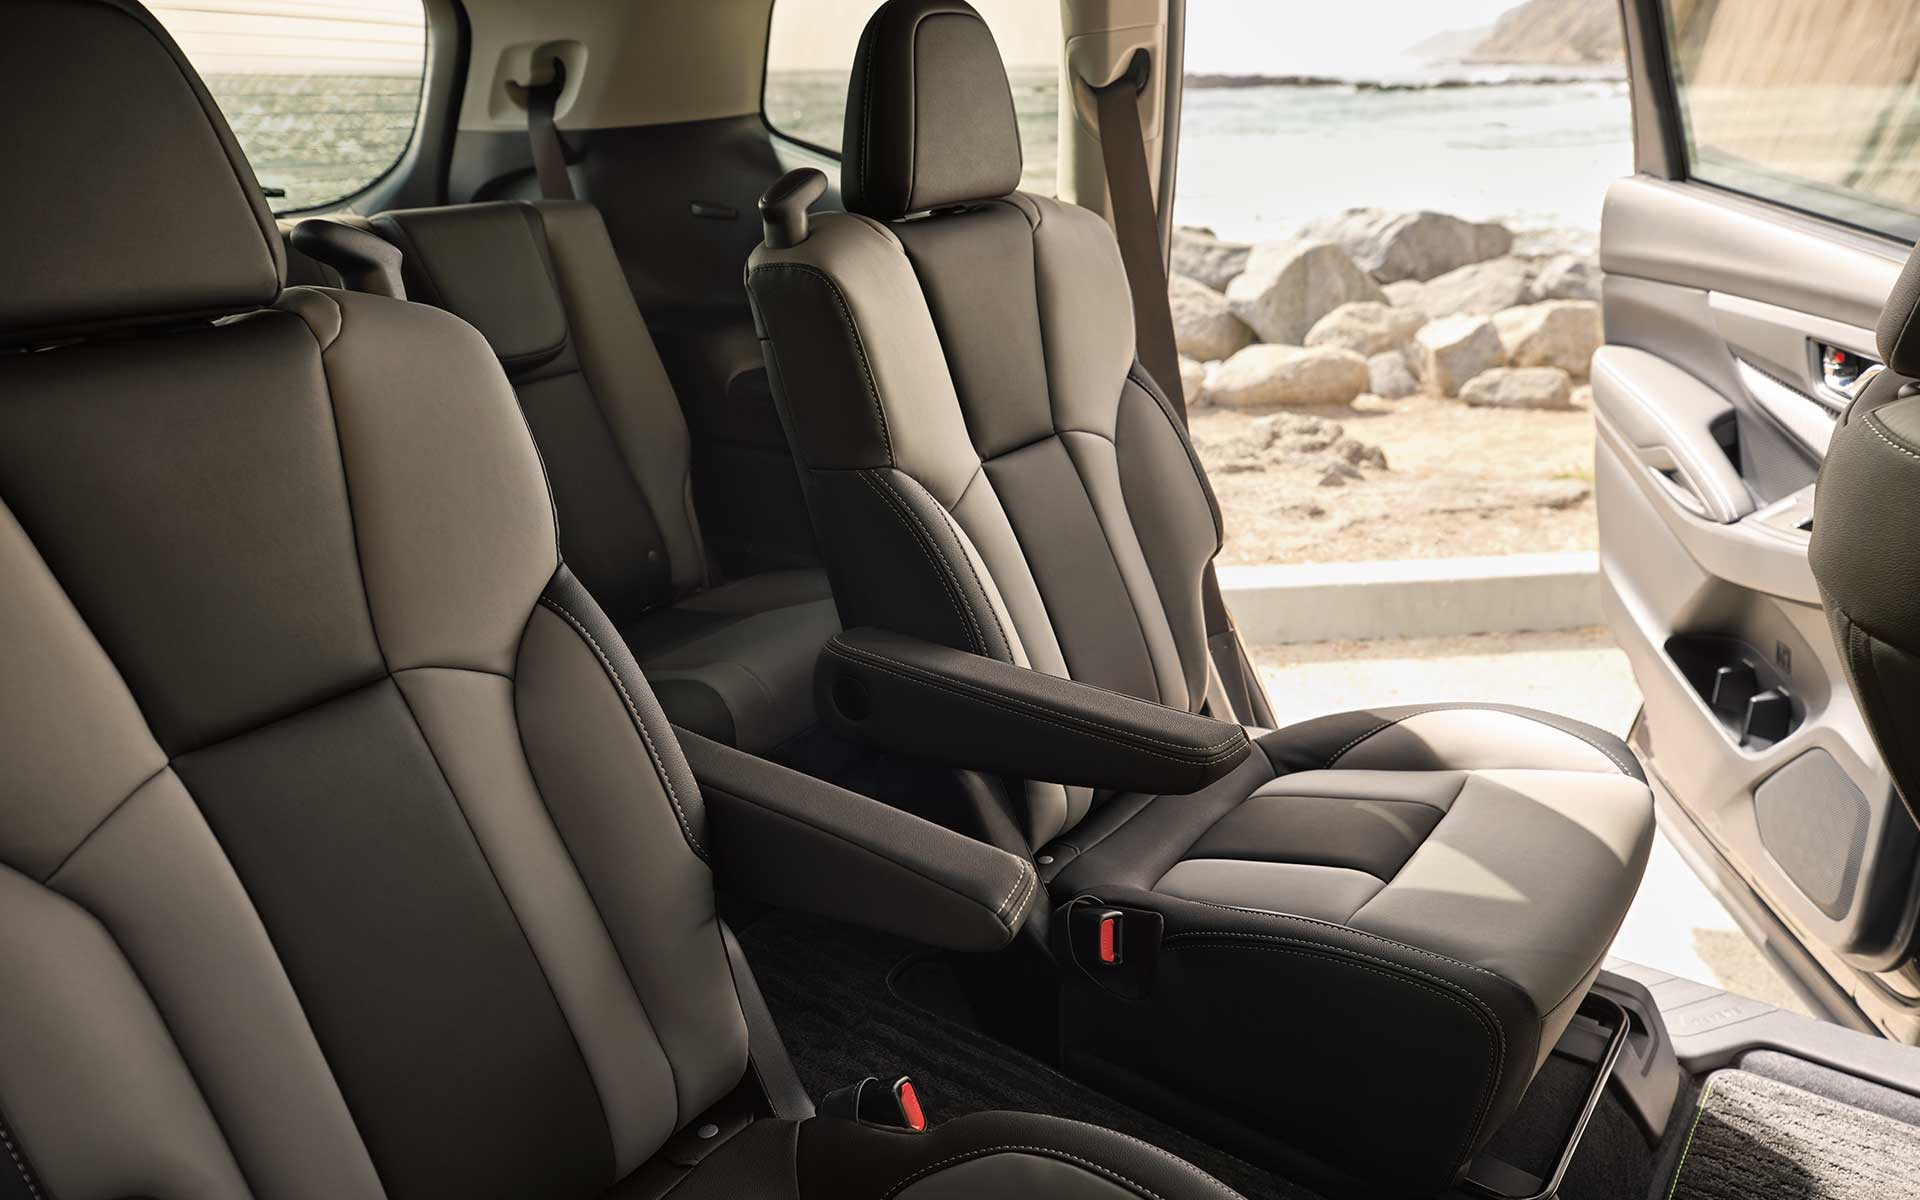 A view of the rear seats showing the gray StarTex Upholstery inside the Subaru Ascent Onyx Edition.